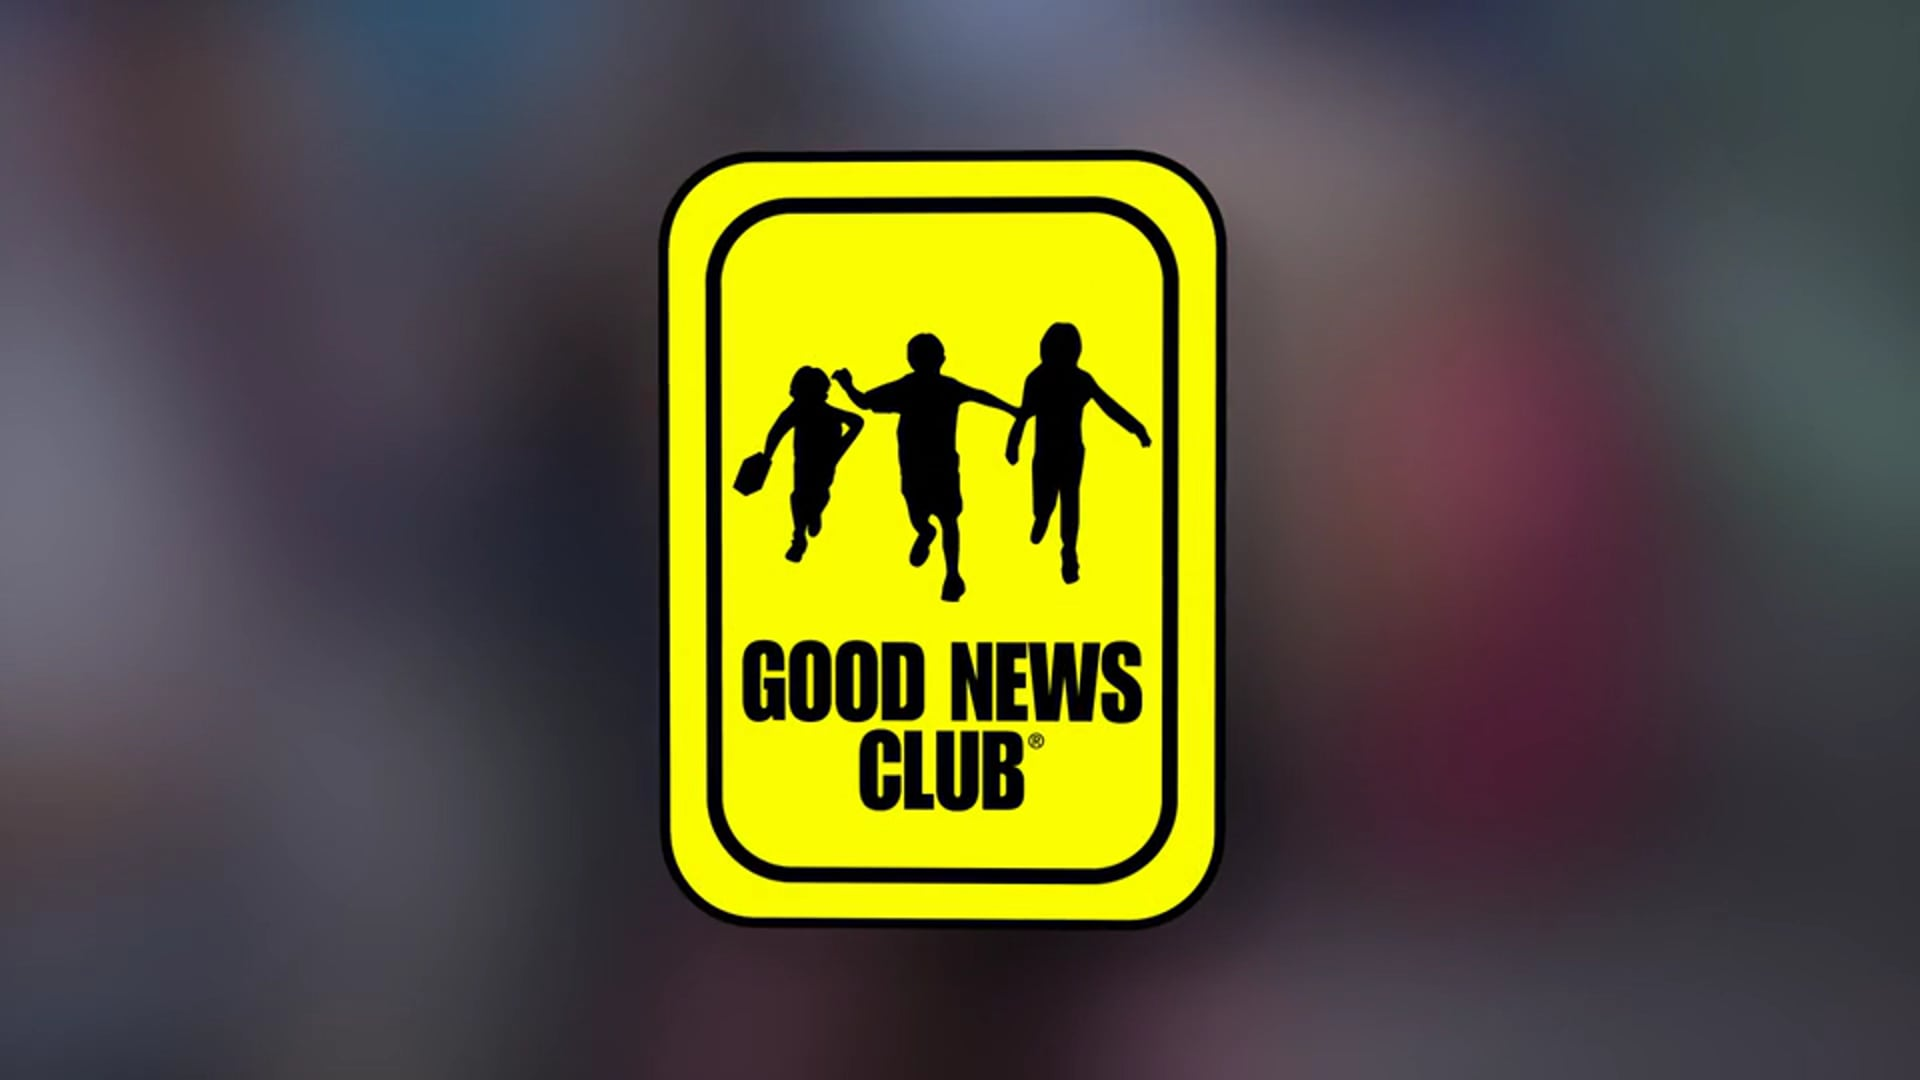 What is Good News Club?